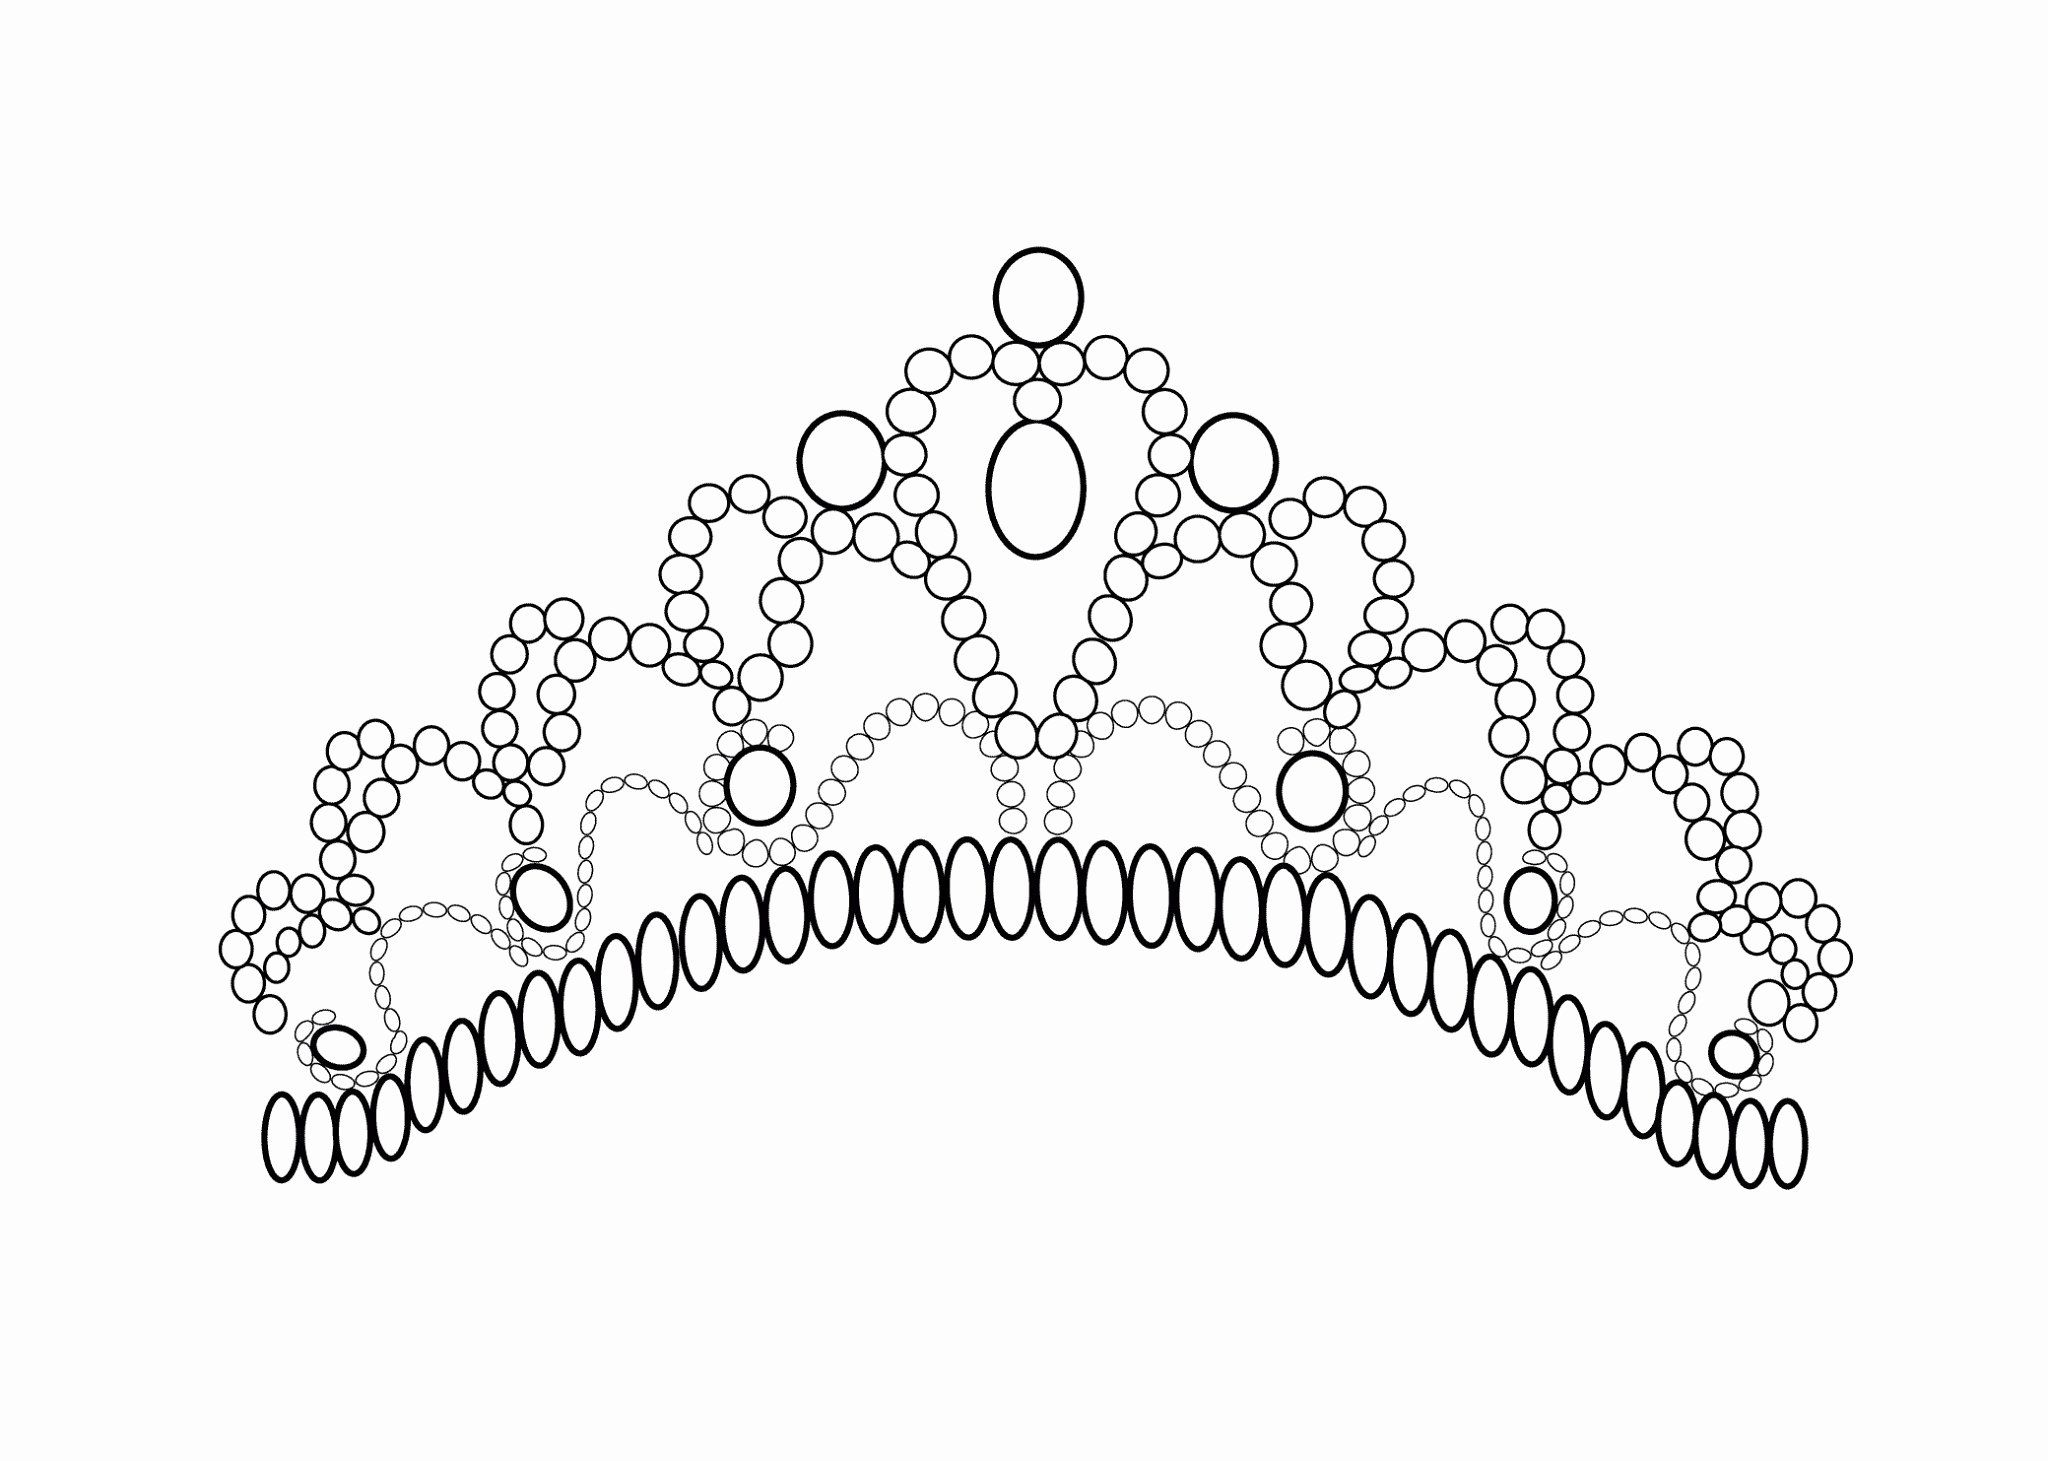 American Gothic Coloring Page Luxury Fort Tiara Coloring Pages Udachkibroub In 2020 Coloring Pages For Girls Printable Coloring Pages Princess Coloring Pages